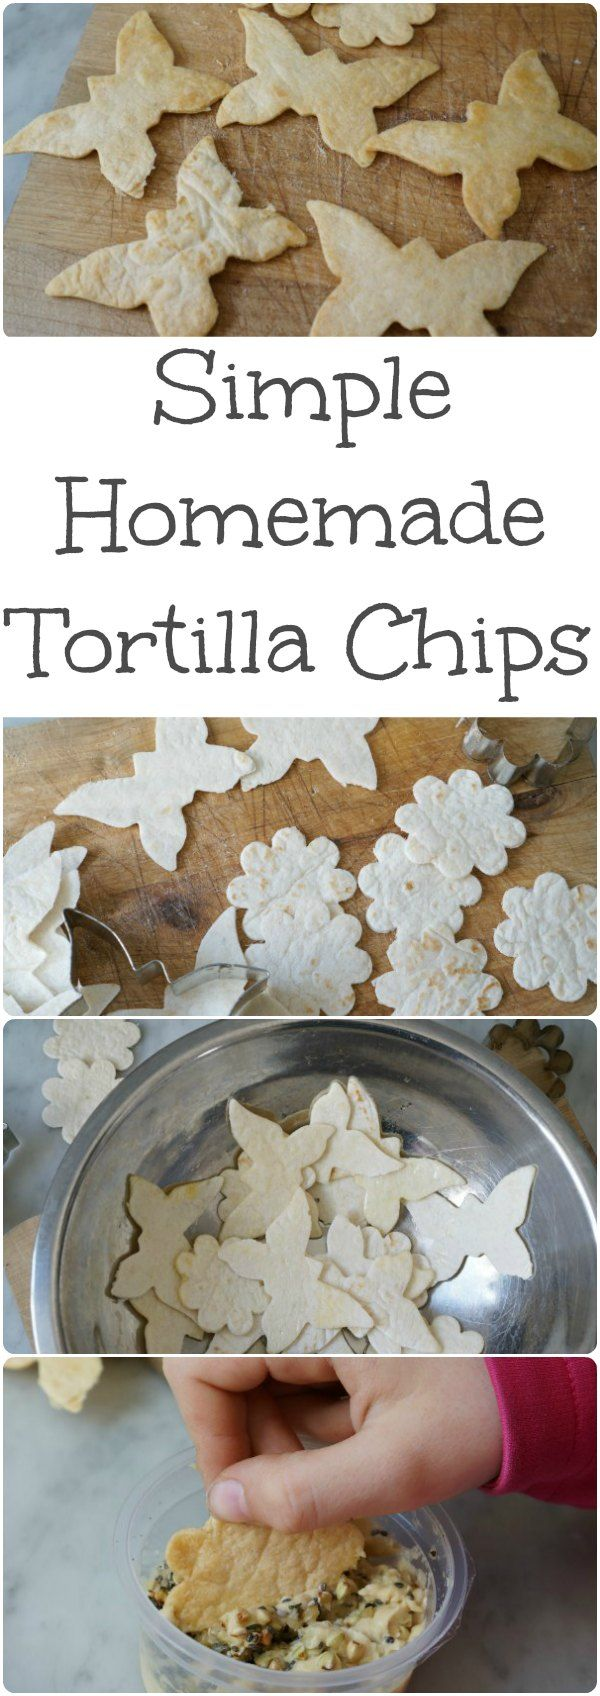 Bake a batch of super crispy homemade tortilla chips - a healthy after ...